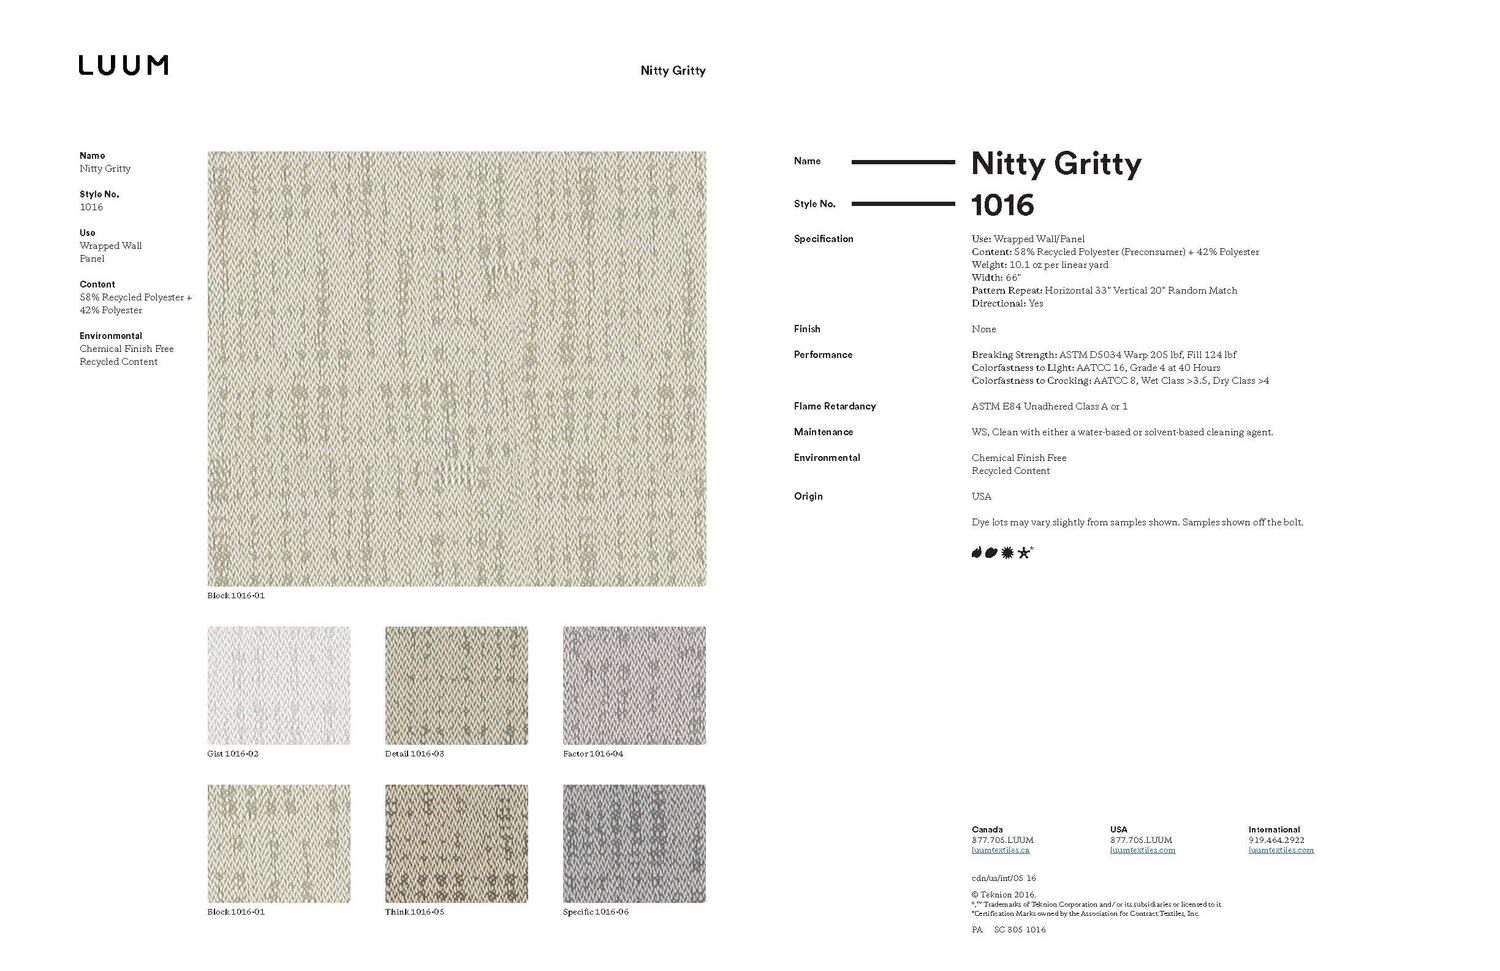 Nitty Gritty - Specific - 1016 - 06 Sample Card